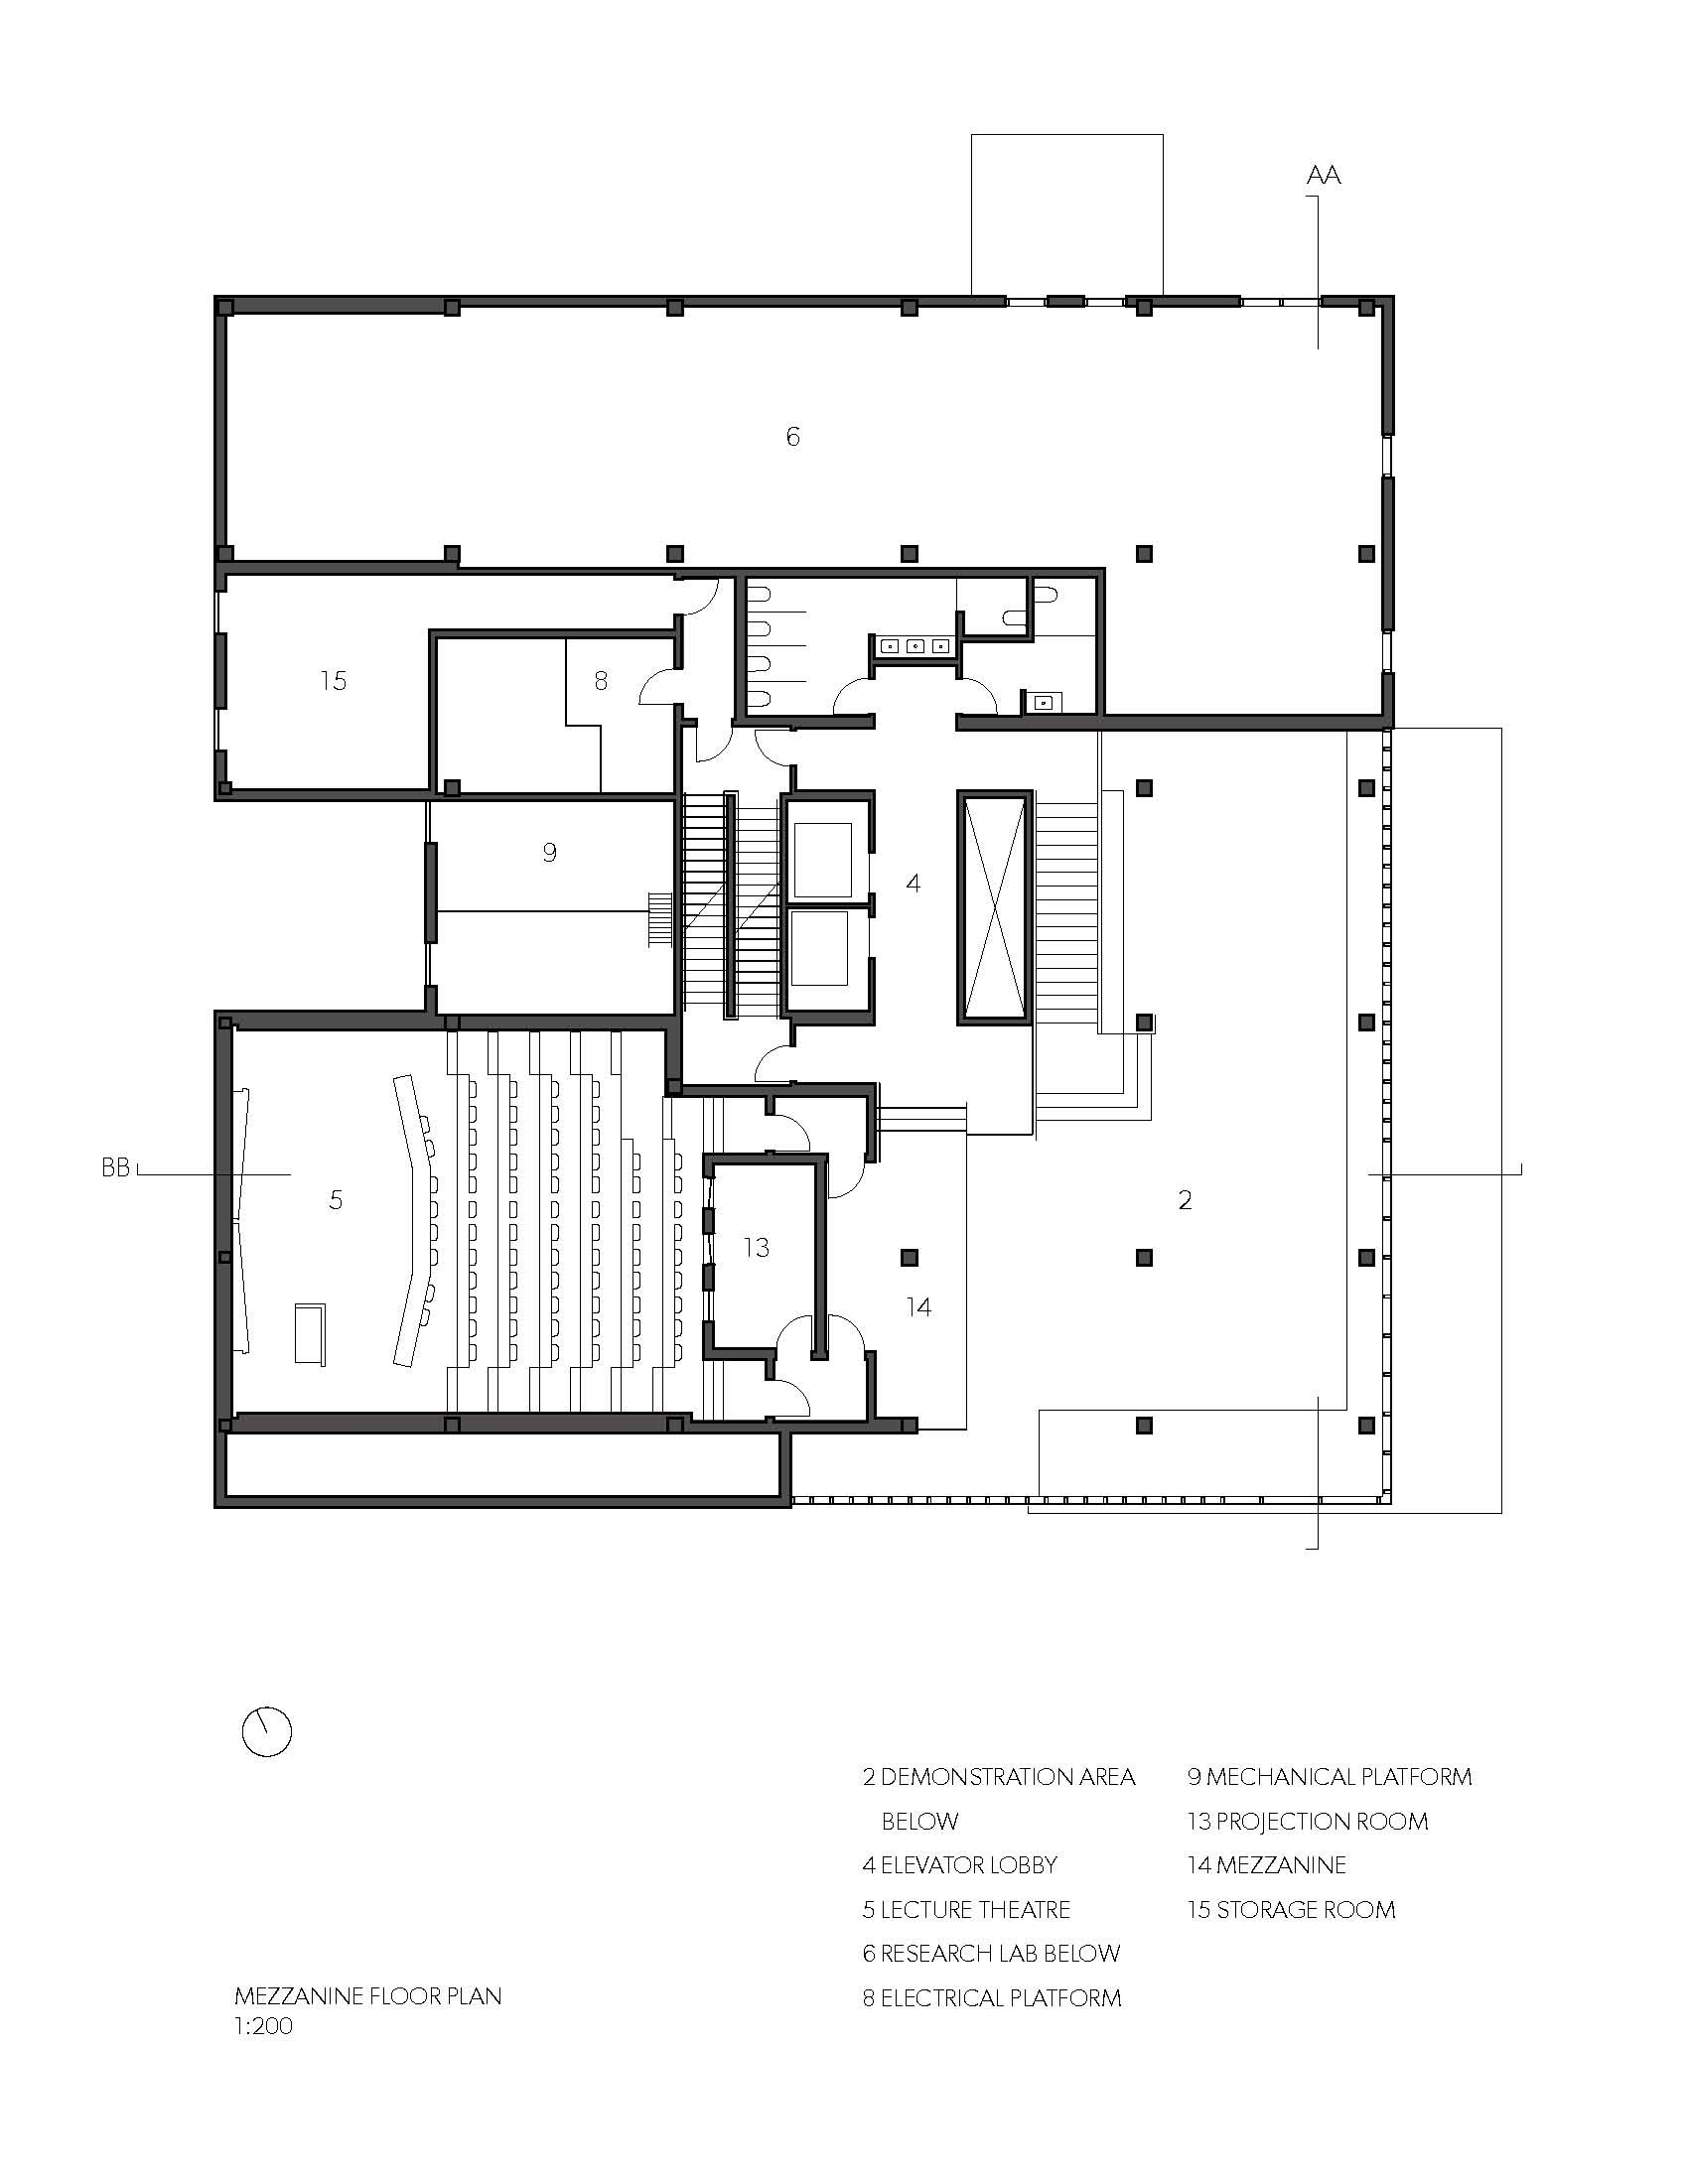 gallery architecture plan - photo #2